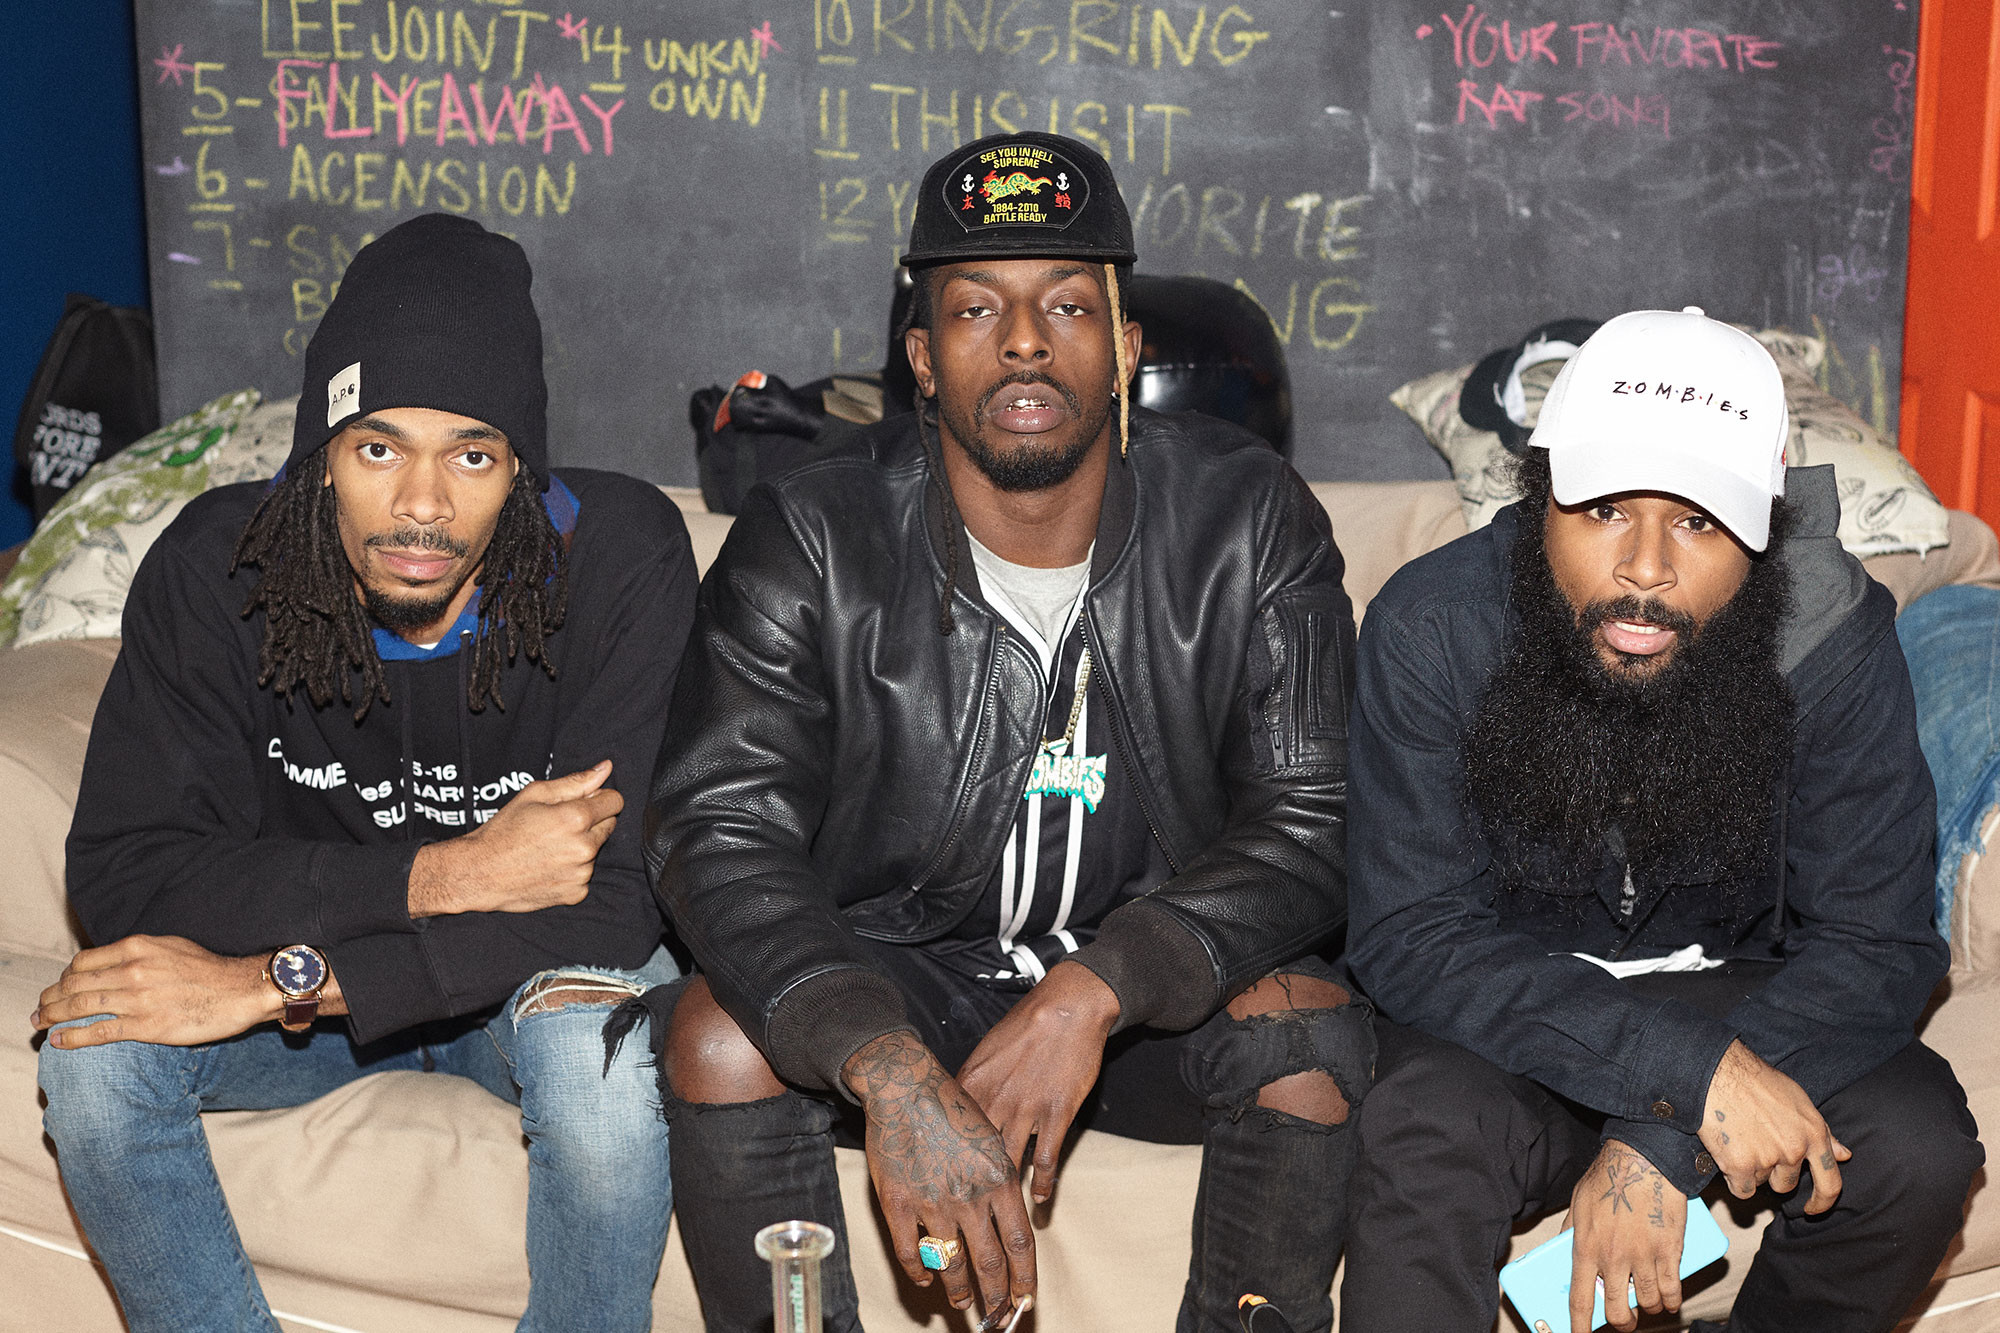 """Meechy Darko, Erick """"The Architect"""" Elliott and Juice make up the  Brooklyn-born rap trio The Flatbush Zombies. The name stems from an early,  somewhat devout …"""